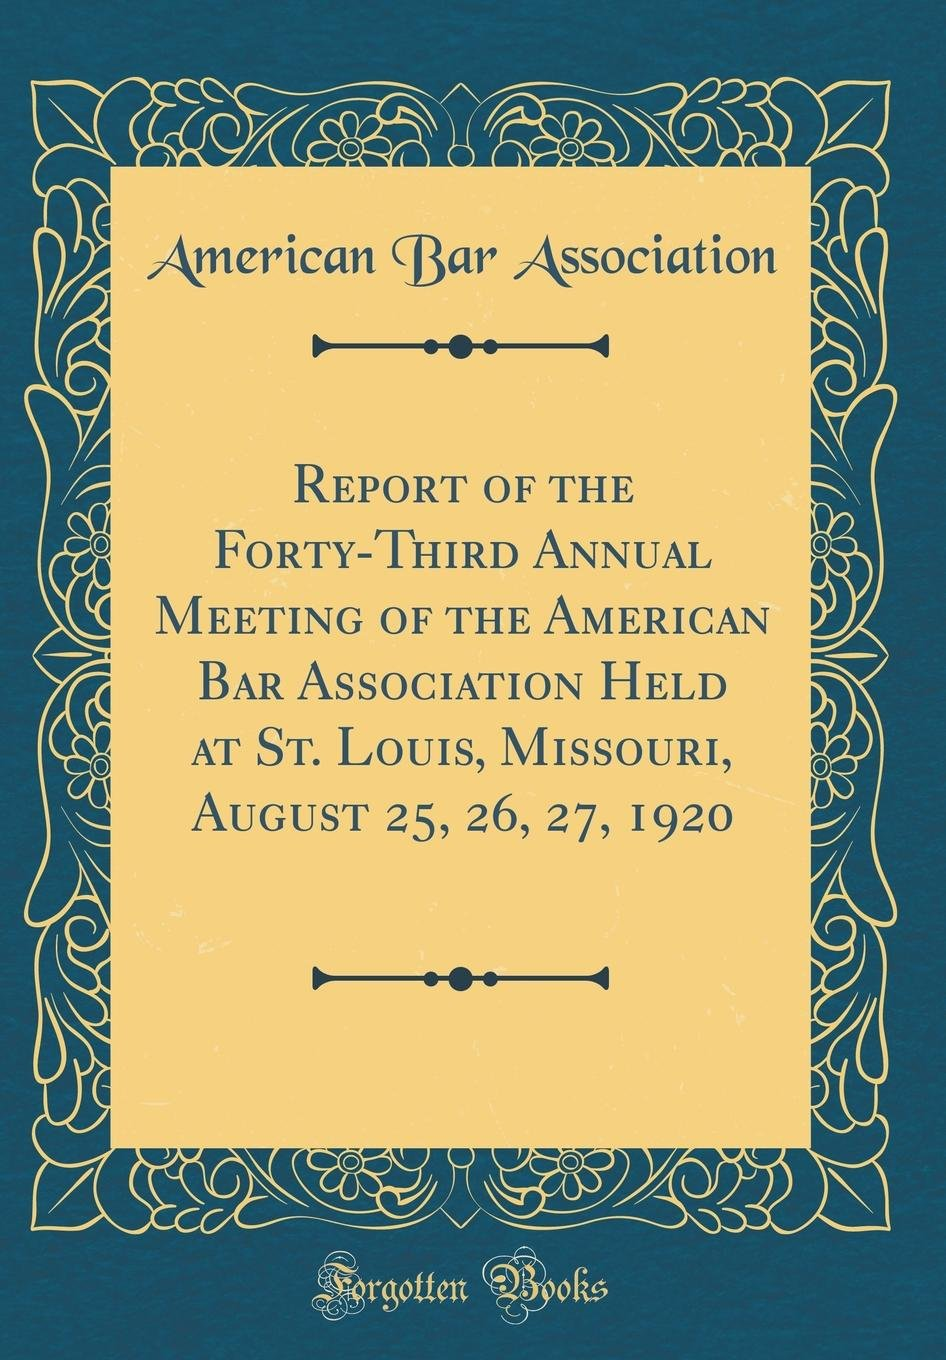 Download Report of the Forty-Third Annual Meeting of the American Bar Association Held at St. Louis, Missouri, August 25, 26, 27, 1920 (Classic Reprint) ebook